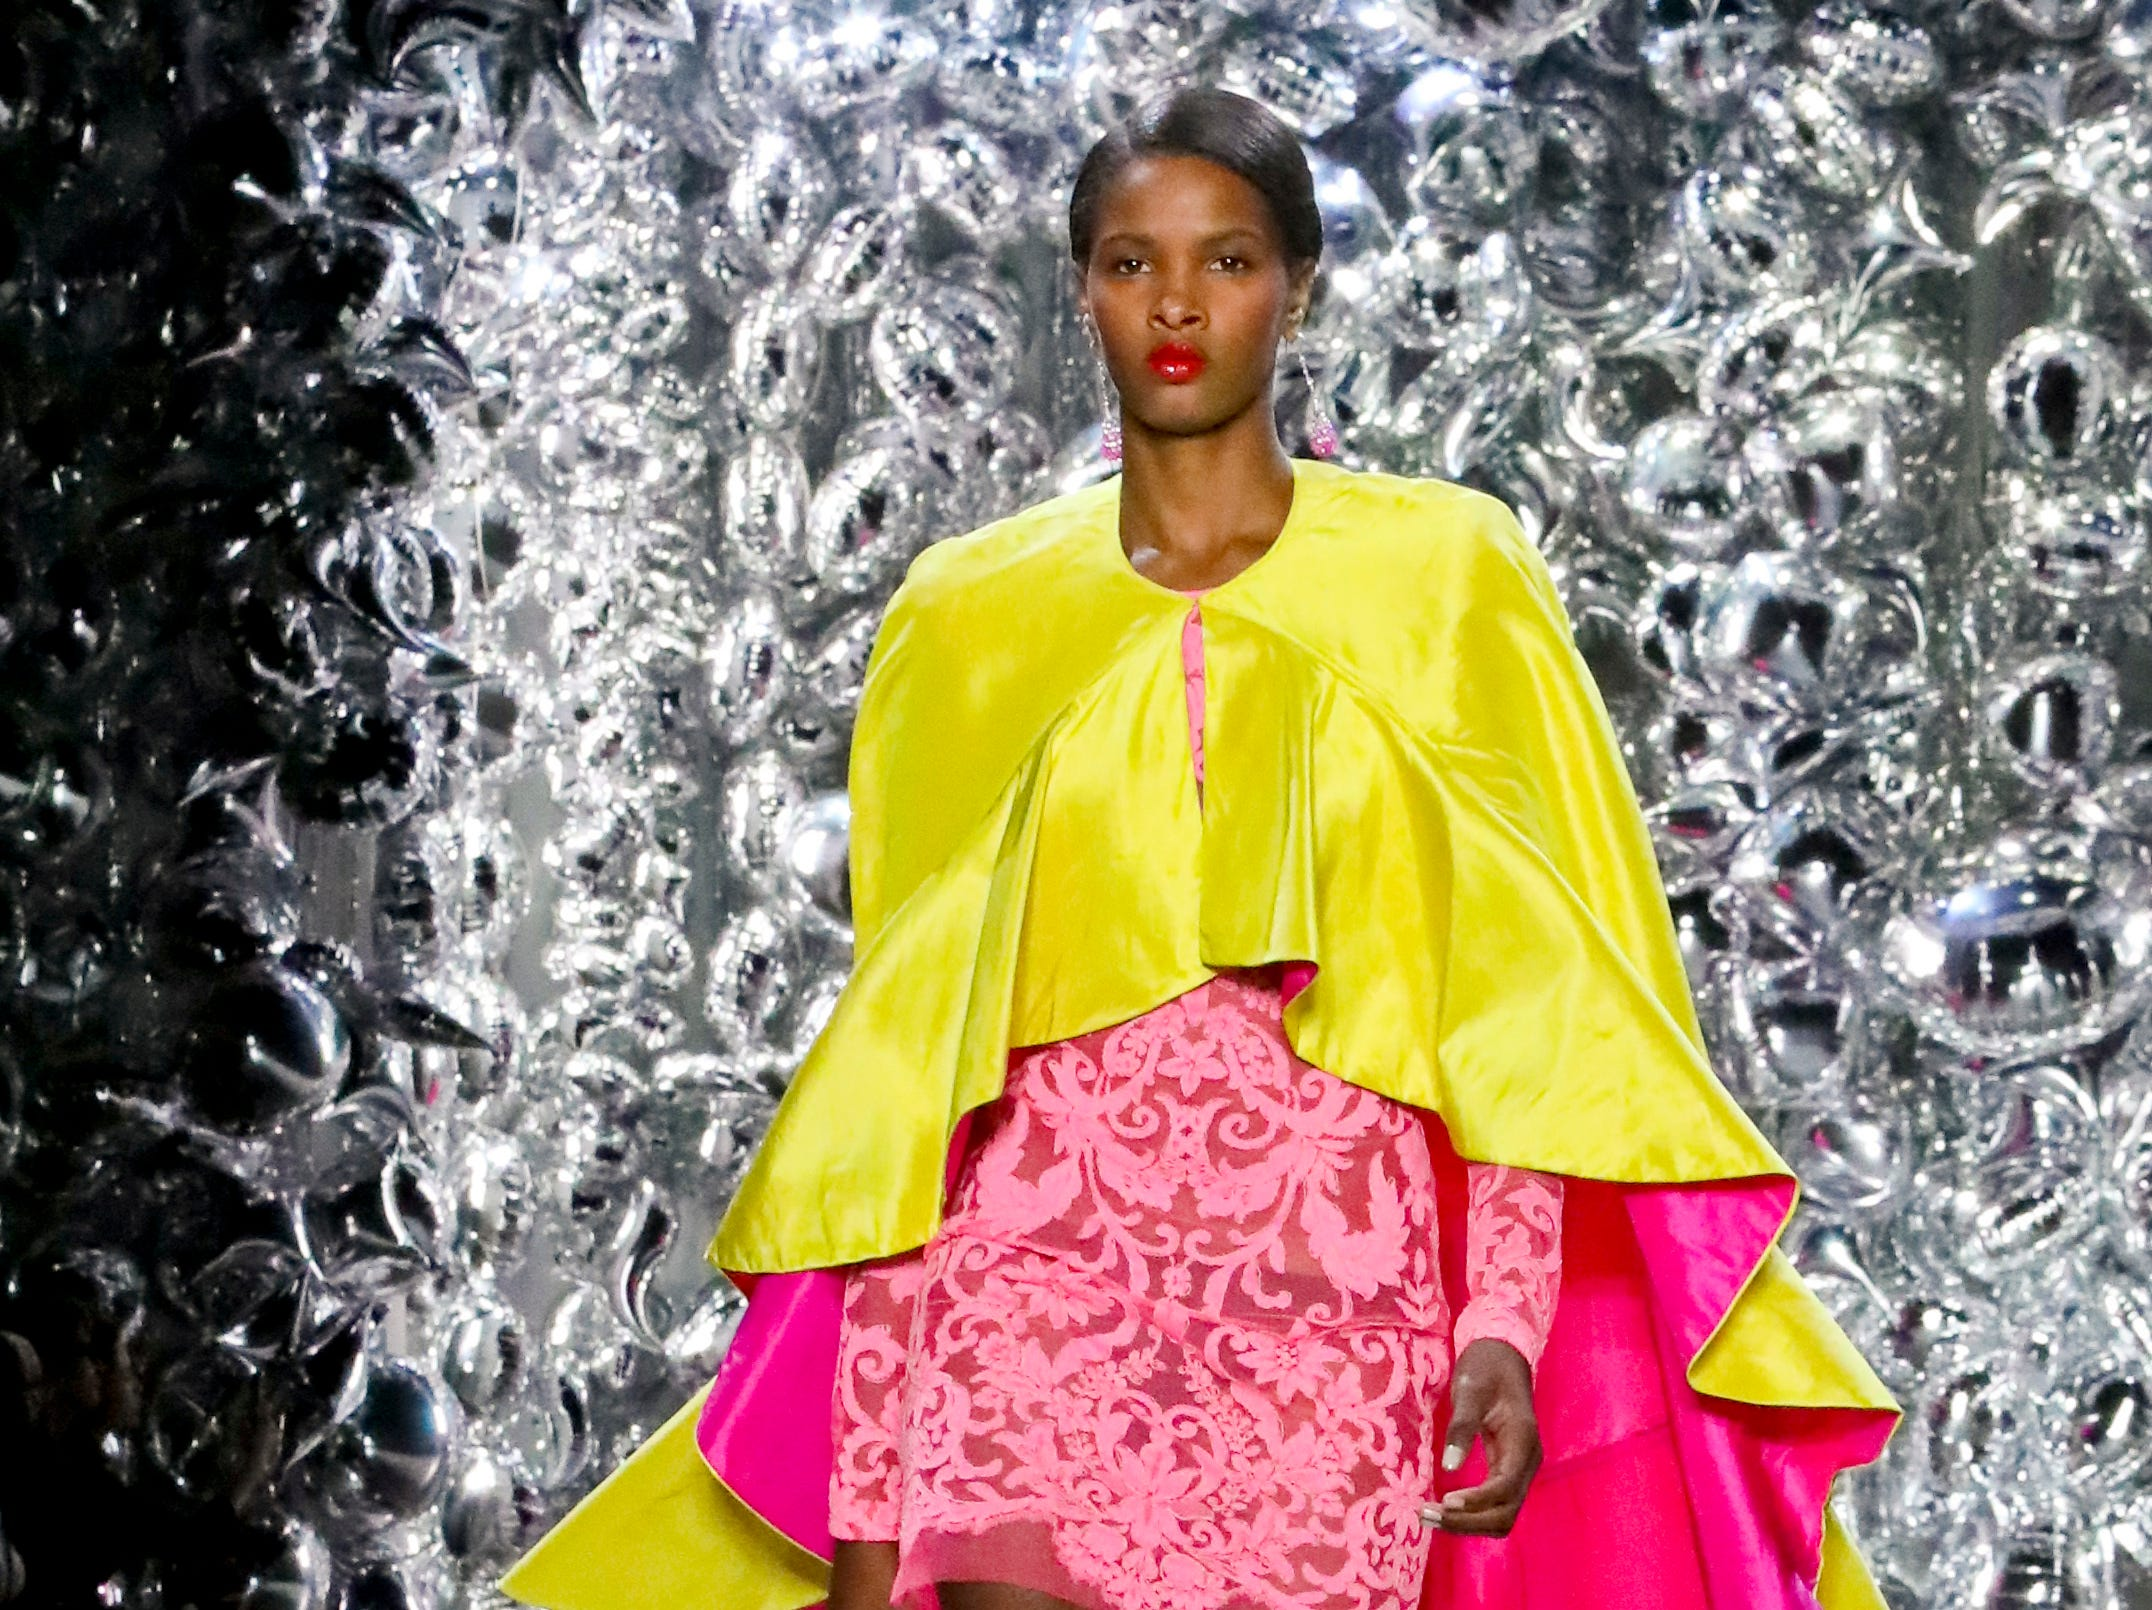 Fashion from the Naeem Khan collection is modeled during Fashion Week, Tuesday Sept. 11, 2018, in New York. (AP Photo/Bebeto Matthews) ORG XMIT: NYBM105